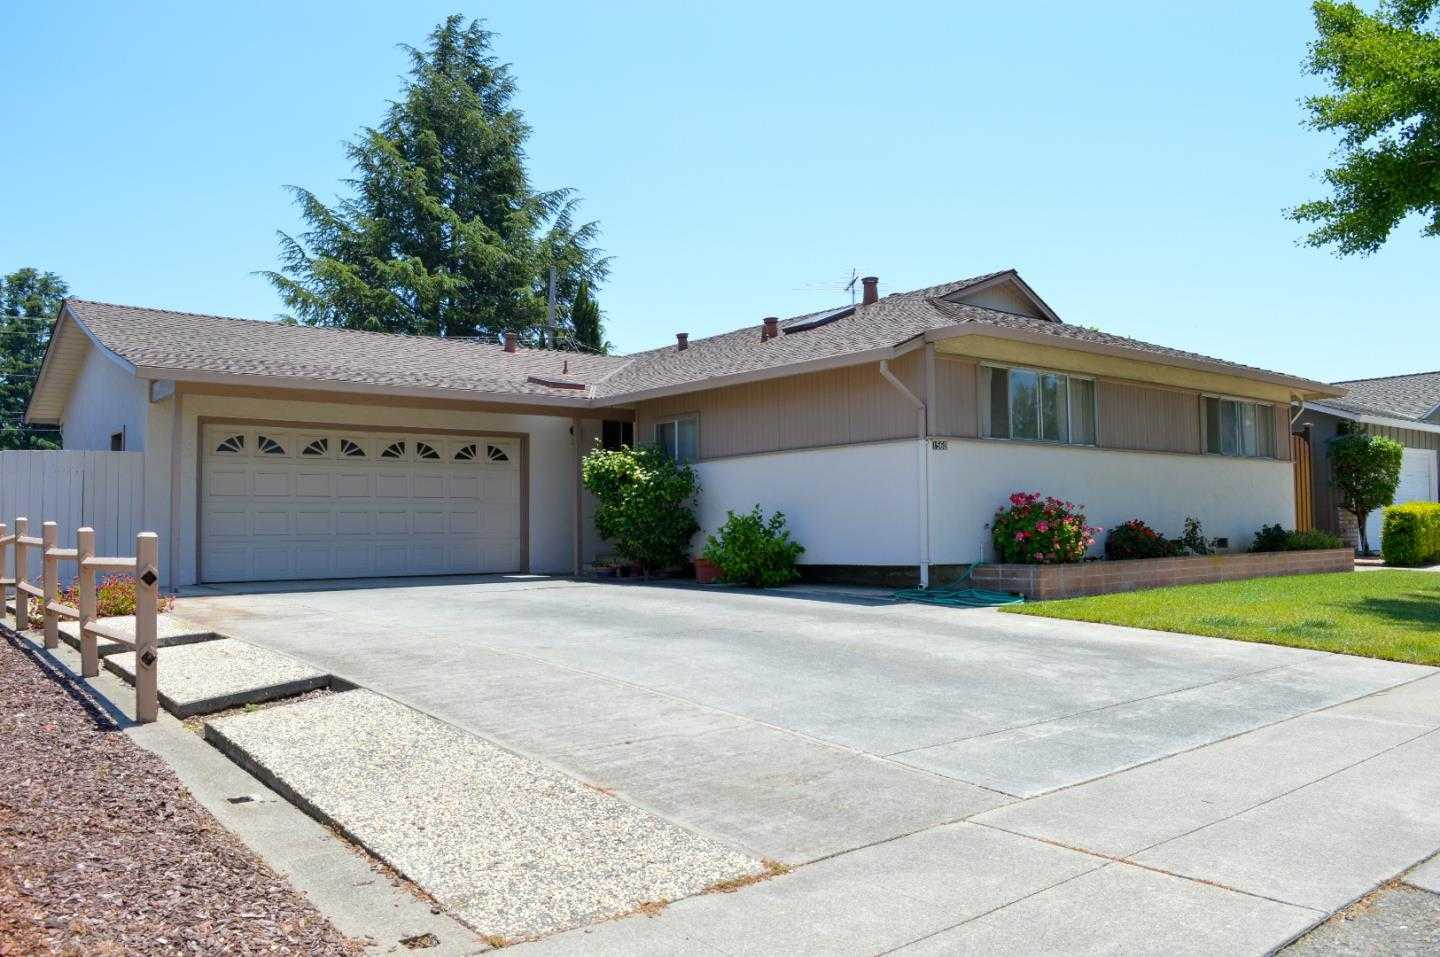 $1,745,000 - 3Br/2Ba -  for Sale in Sunnyvale